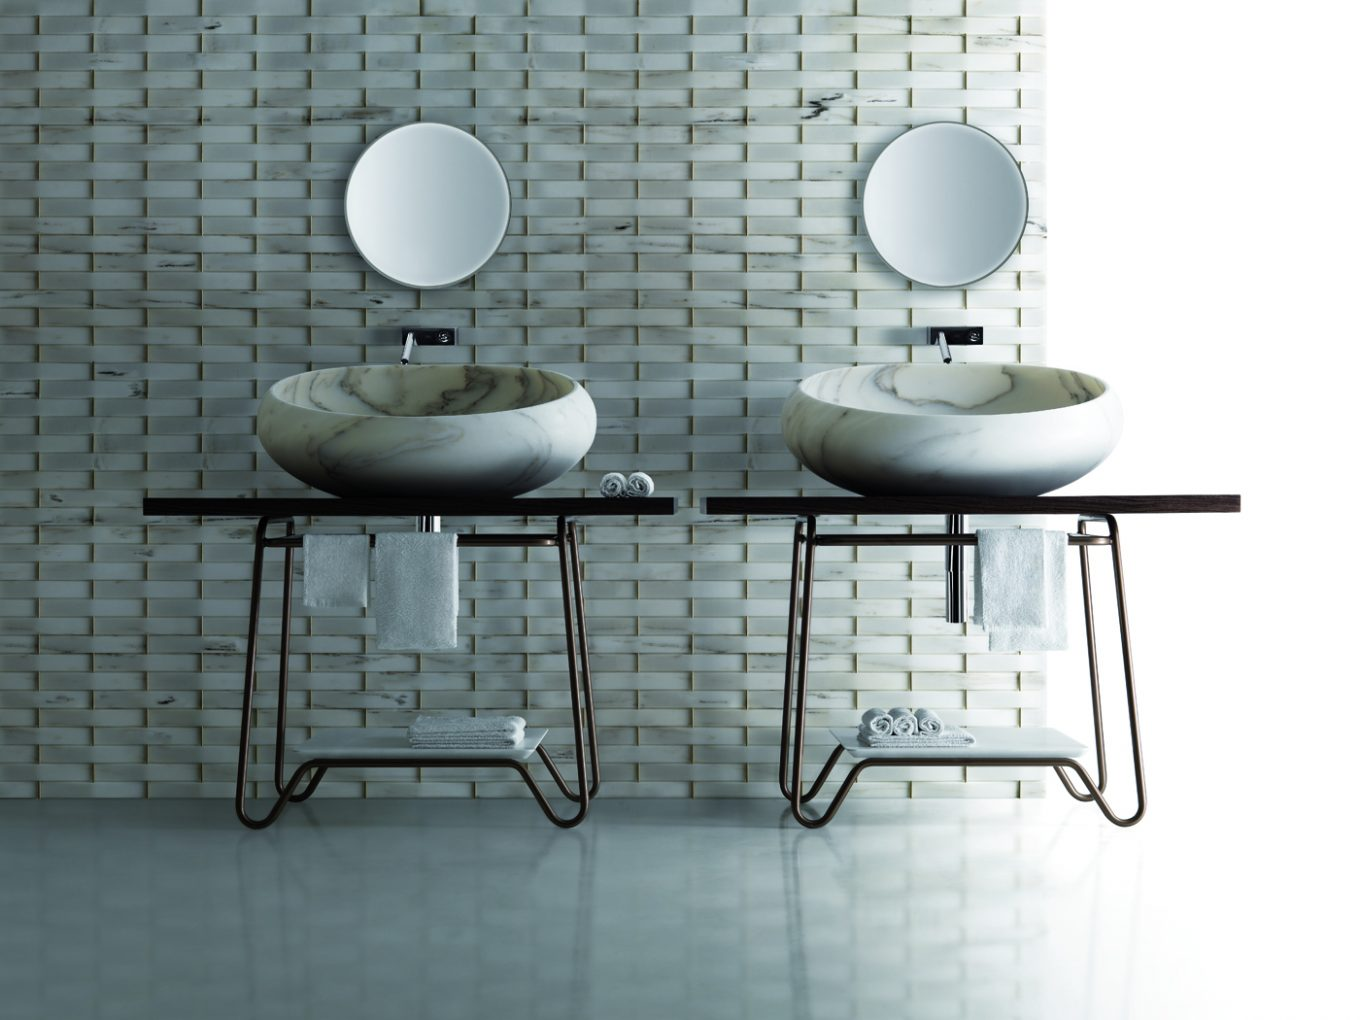 Natural Stone Designs Apply Ancient Techniques to Modern Luxury natural stone designs Natural Stone Designs Apply Ancient Techniques to Modern Luxury Kreoo GONG Washbasin in Bianco Estremoz Kato easel and Panama Texture6